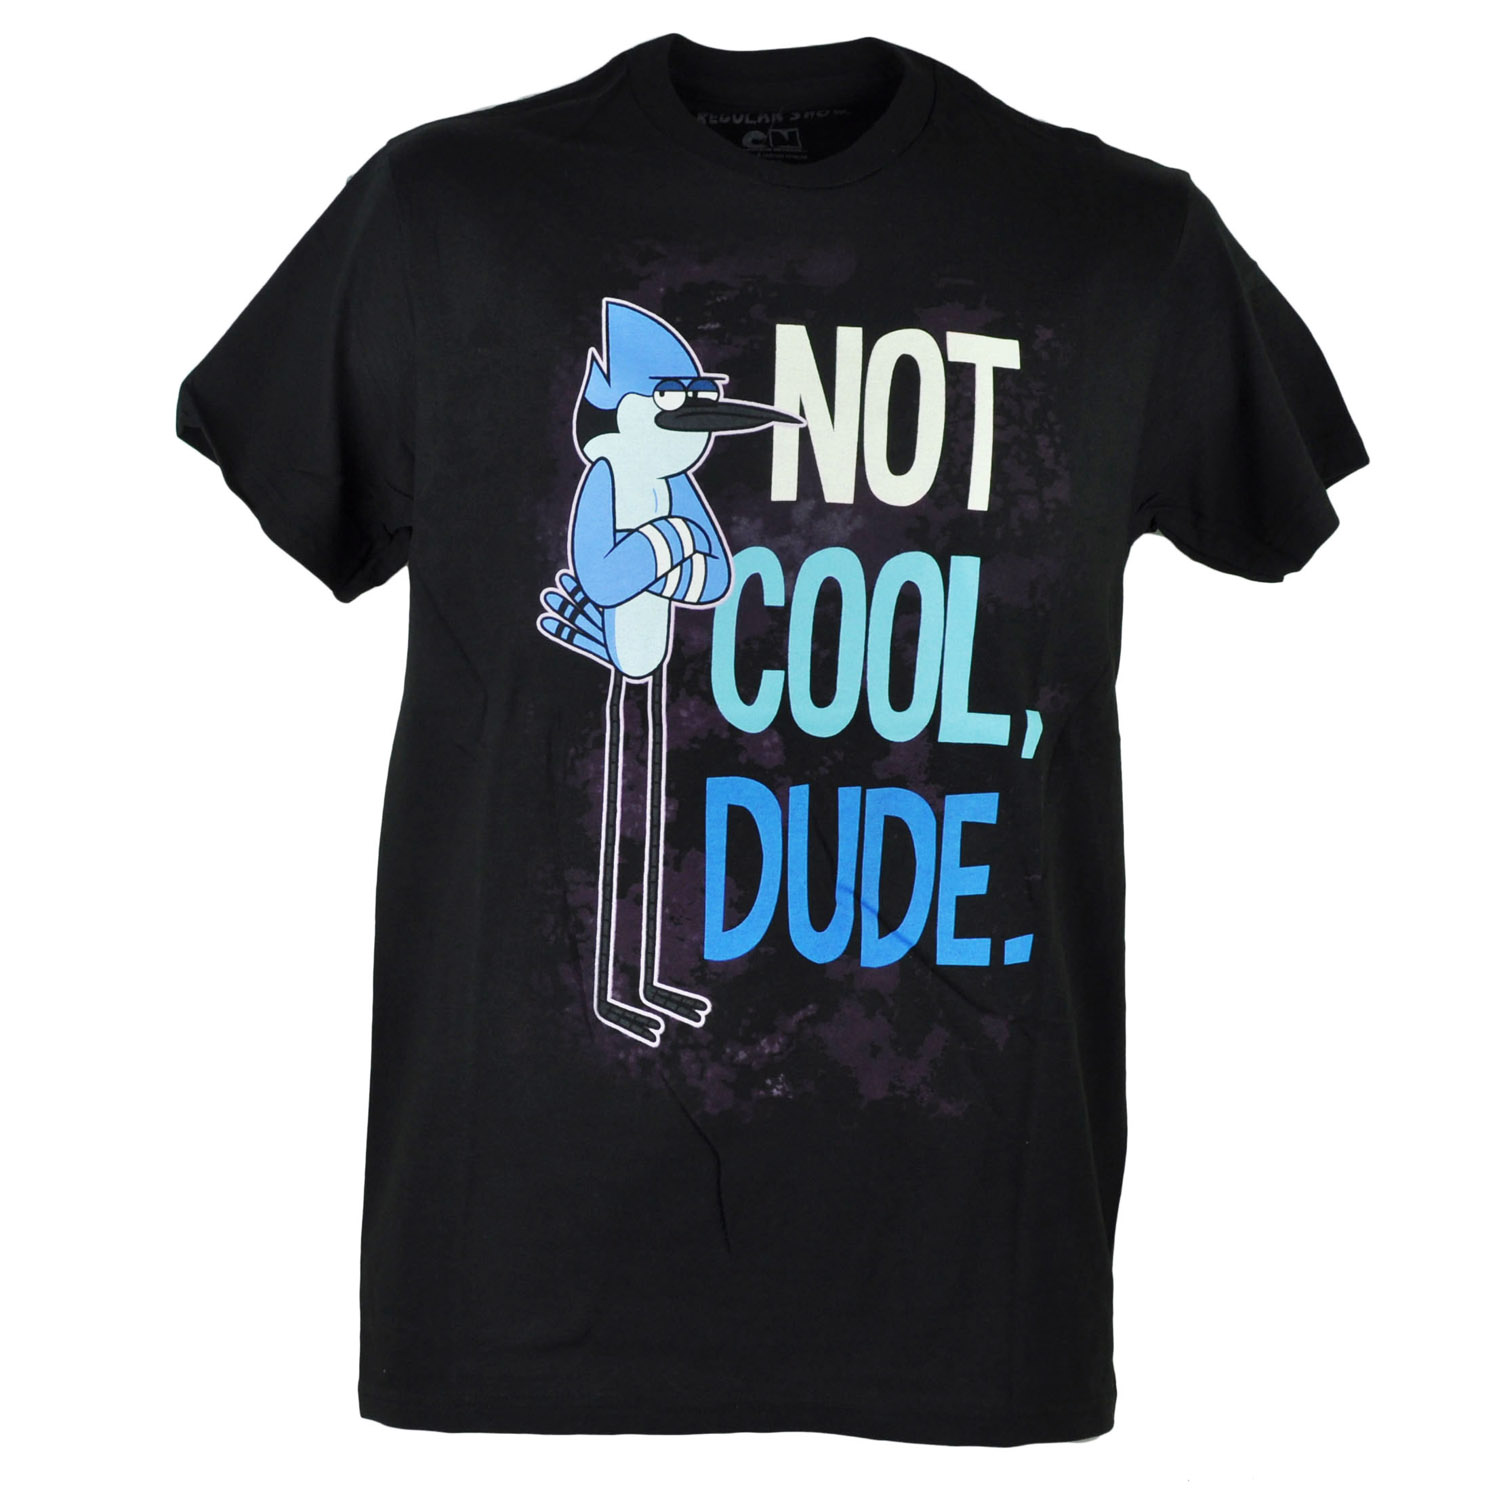 Regular Show Mordecai Not Cool Dude Graphic Tshirt Tee XLarge